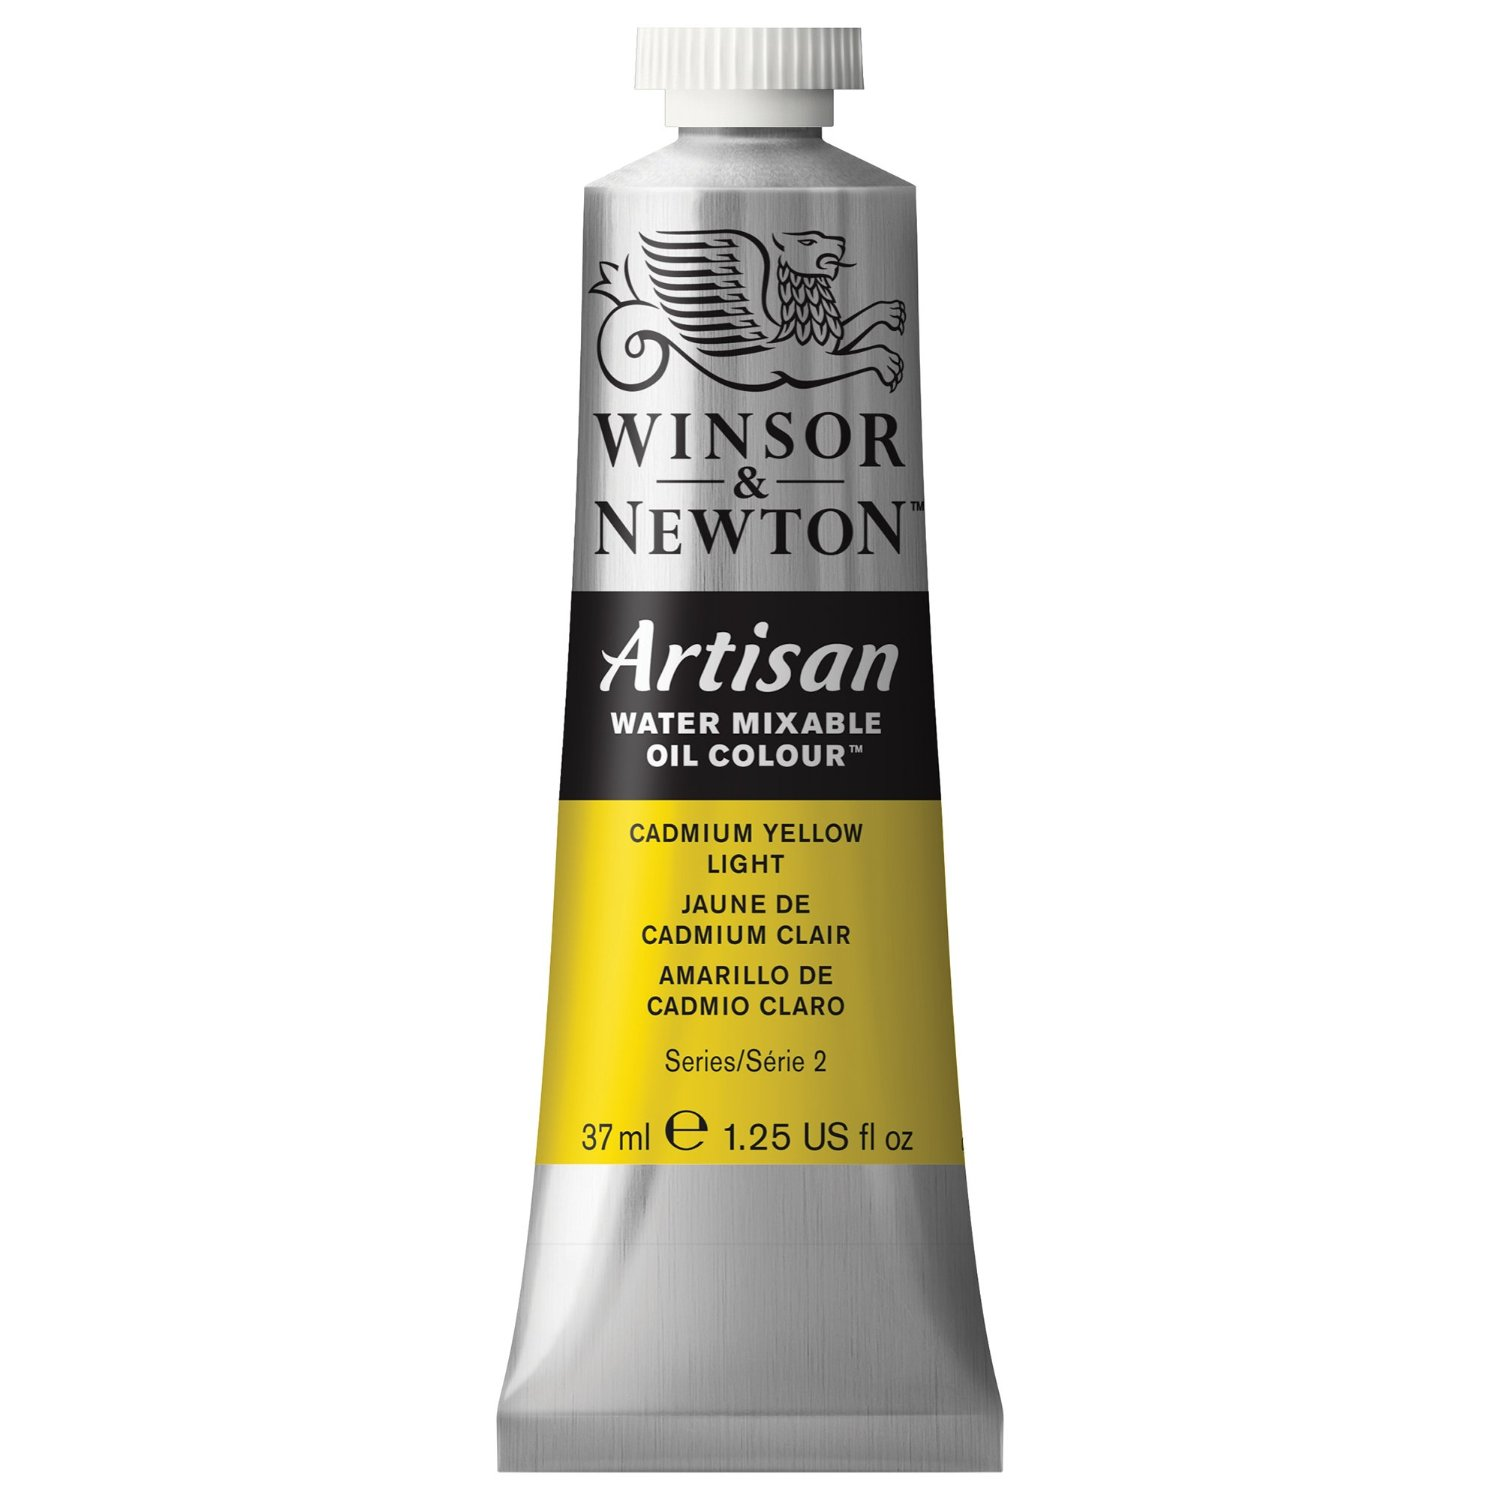 Winsor & Newton Artisan Water Mixable Oil Color, 37ml, Cadmium Yellow Light